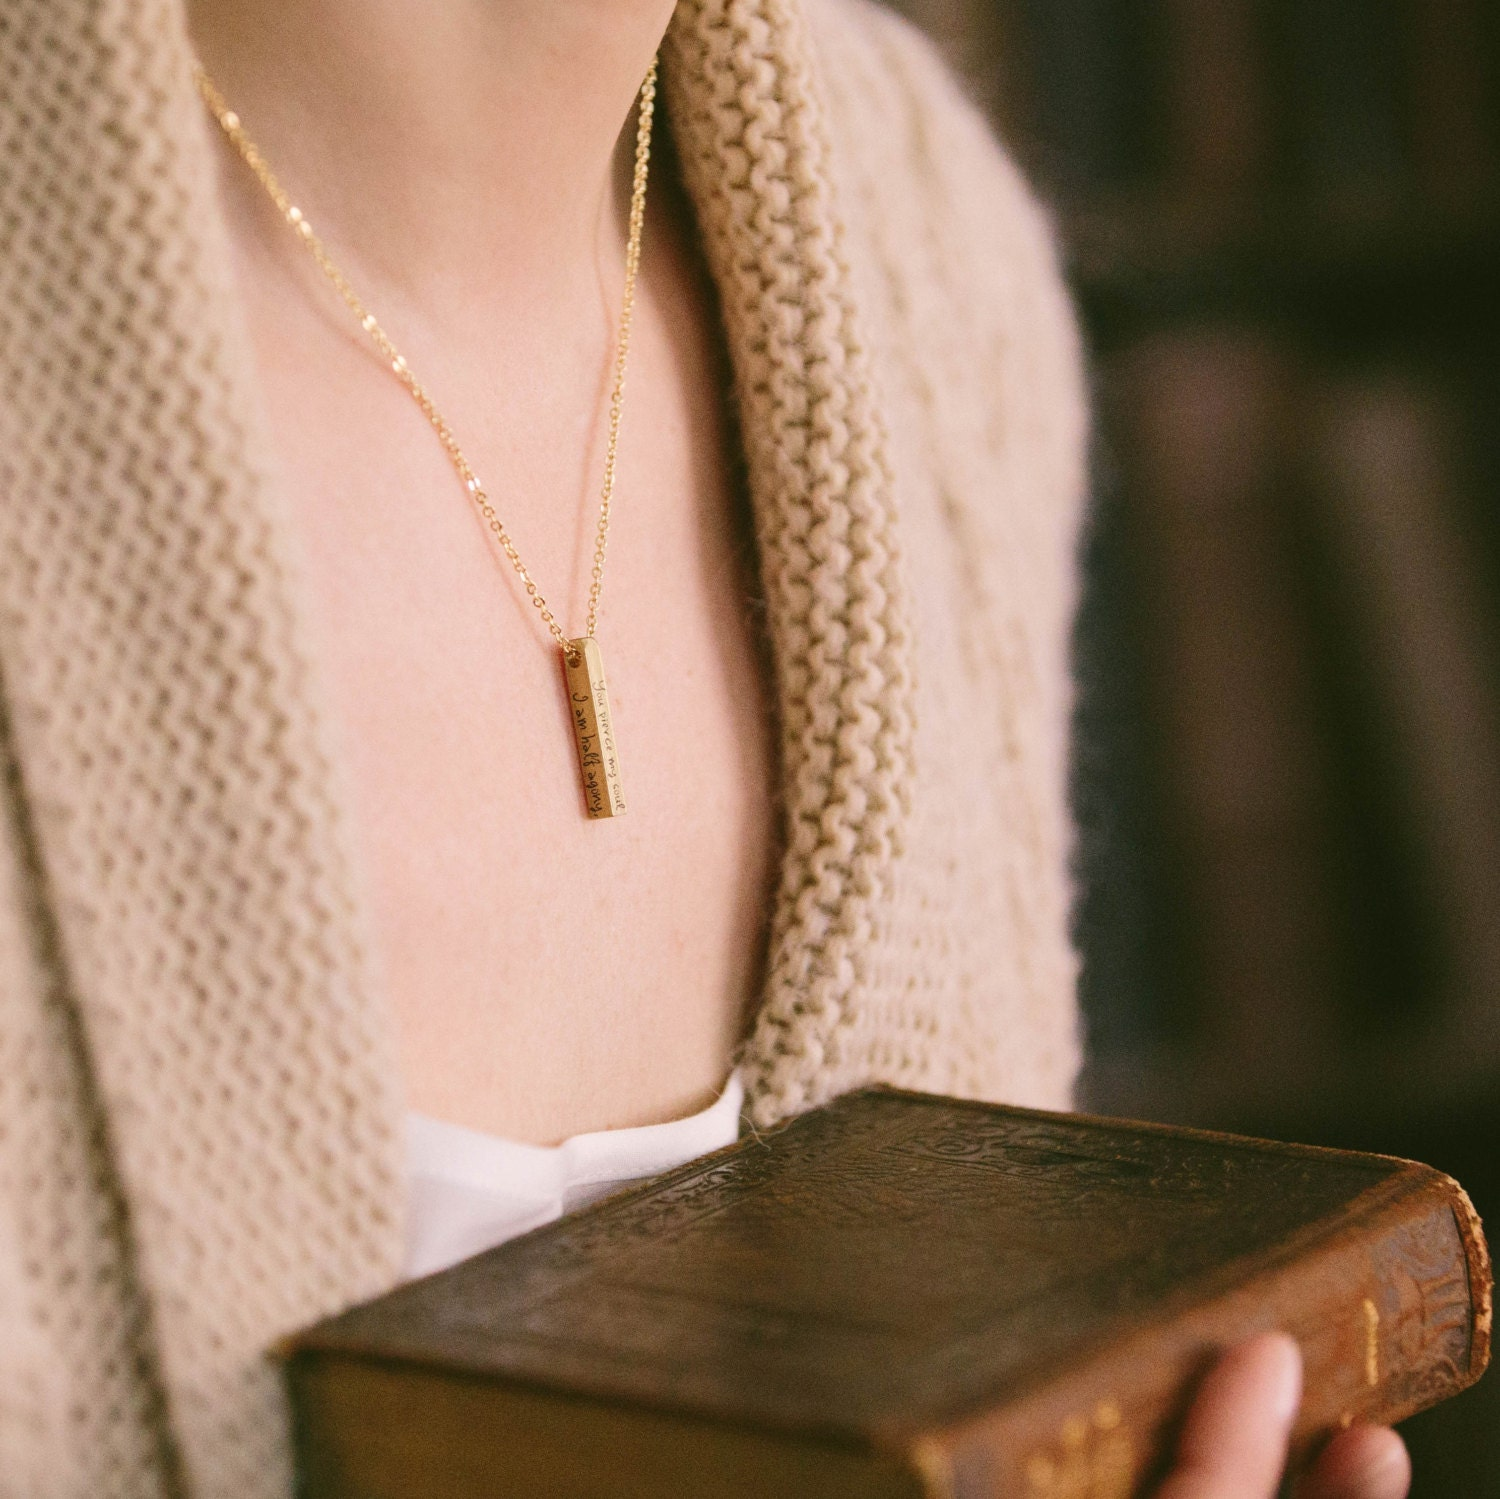 Jane Austen Persuasion Necklace  Half Agony Half Hope  Vertical Bar Necklace  Book Lover Jewelry  Perfect Gift for Wife  Gifts For Her